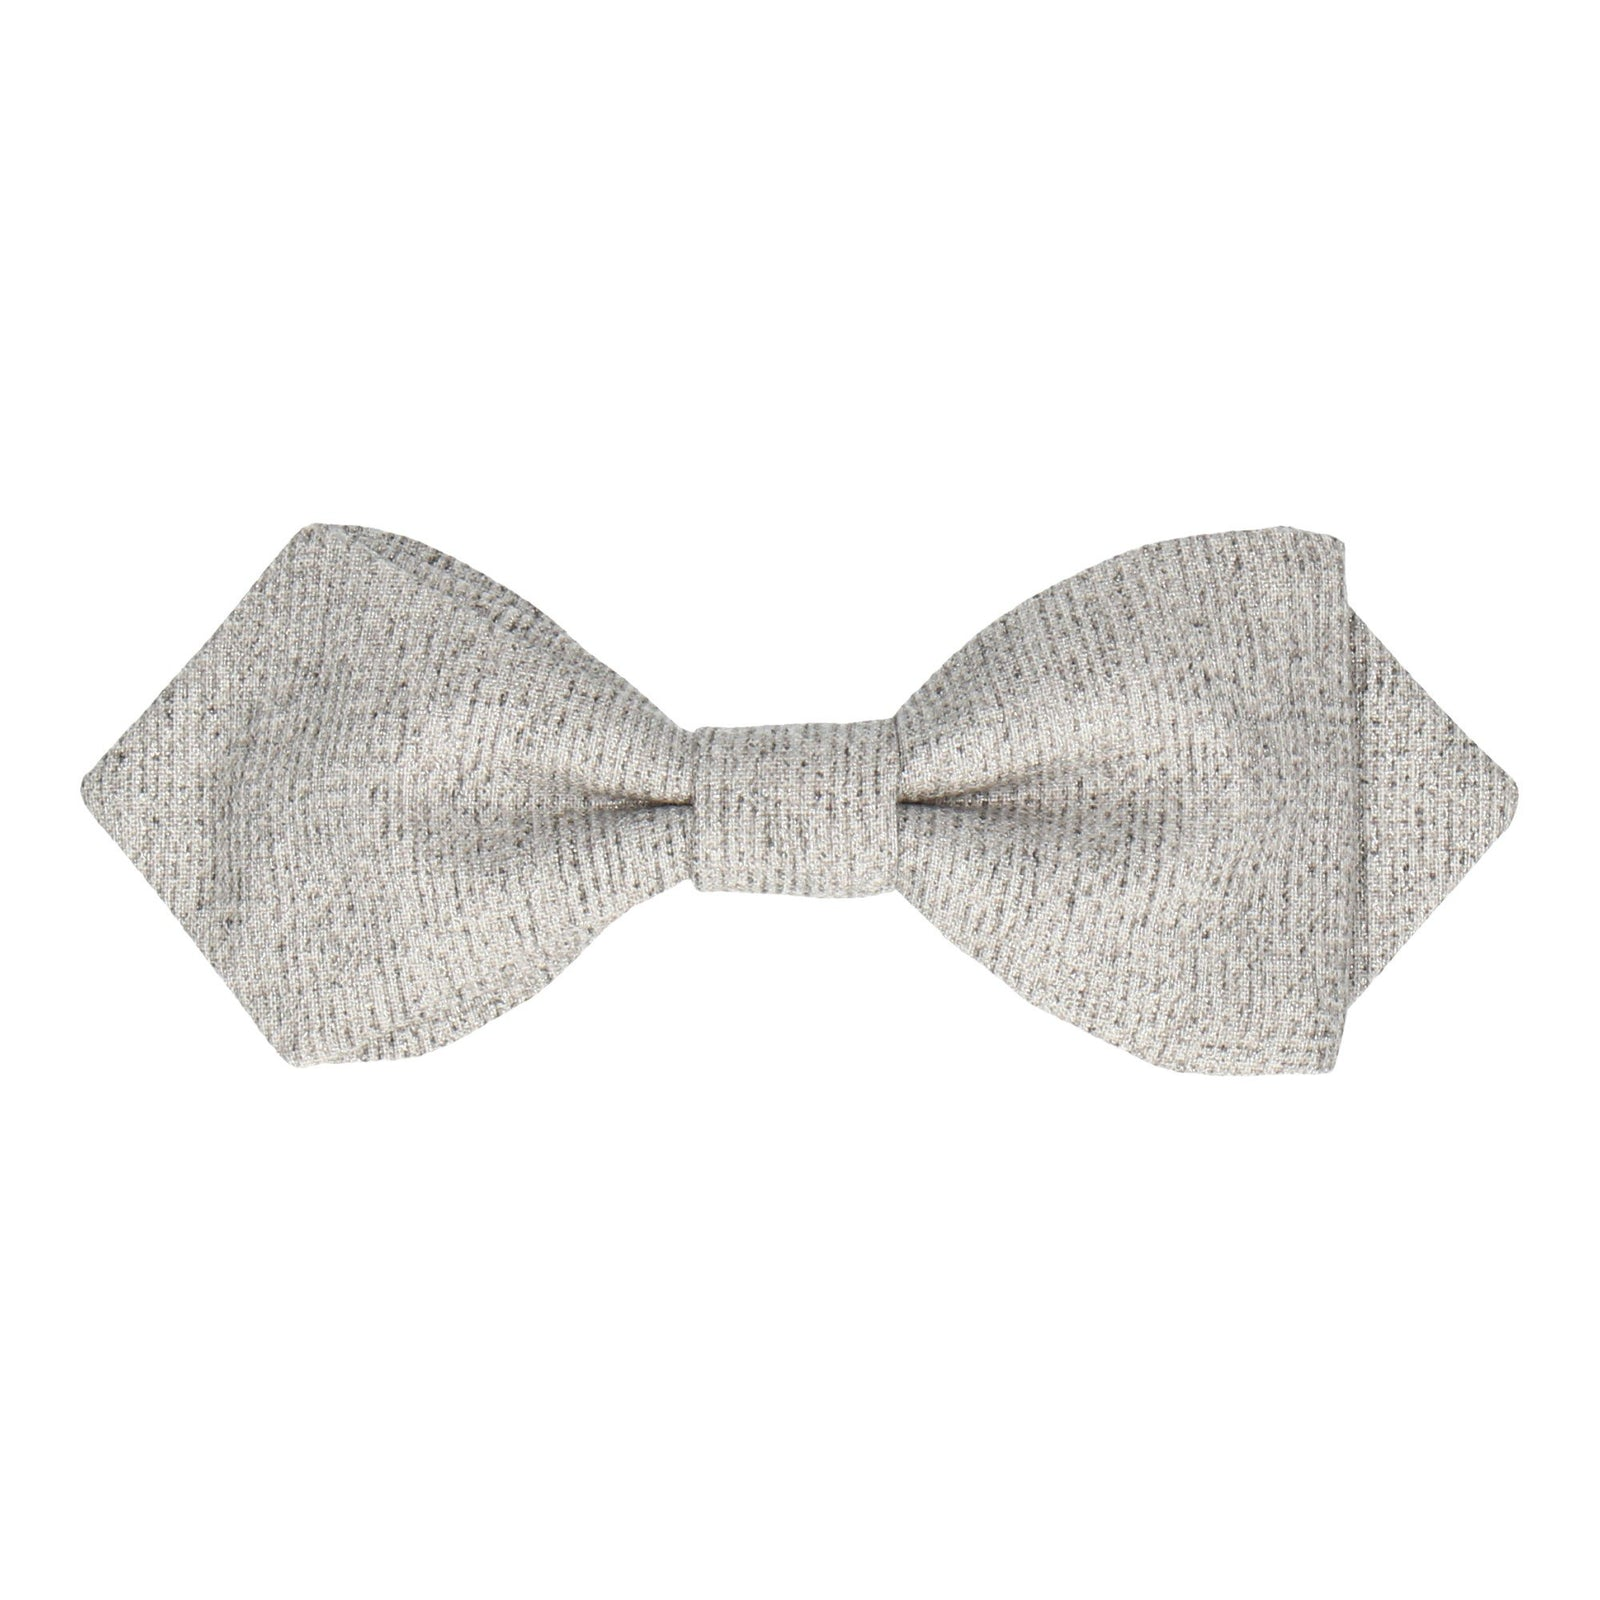 Silver Metallic Thread Bow Tie